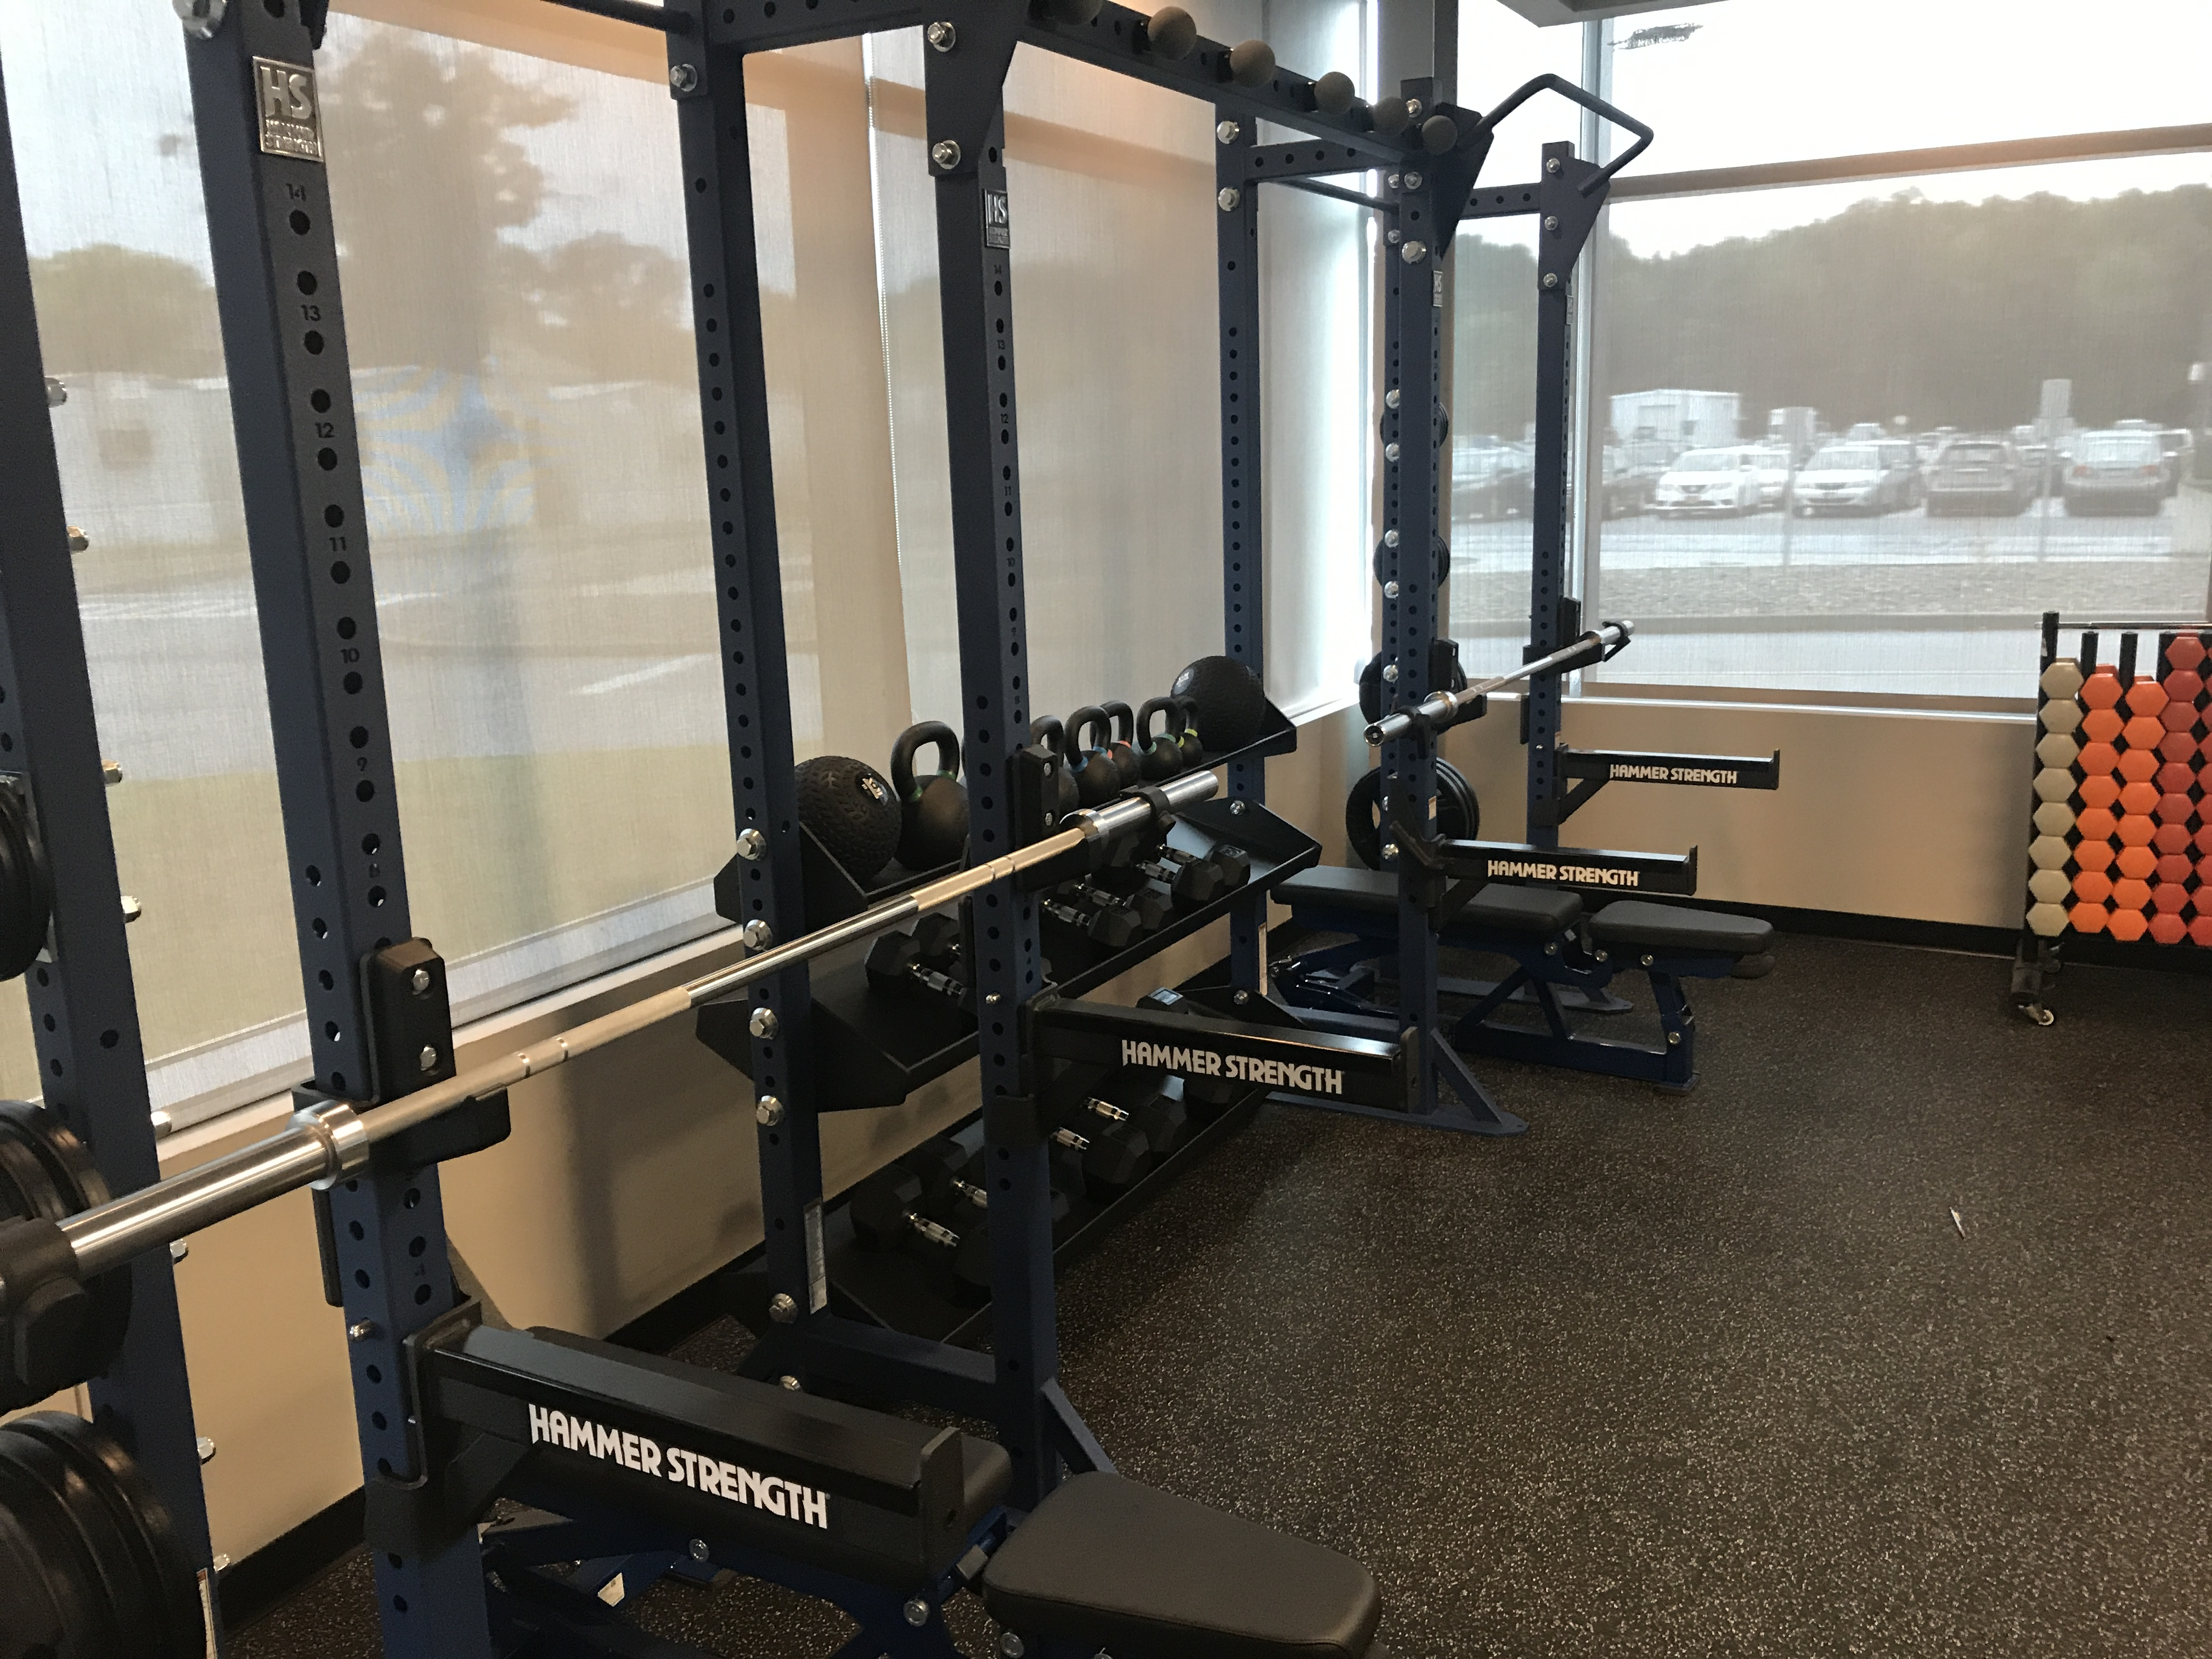 Image of weight equipment in fitness center